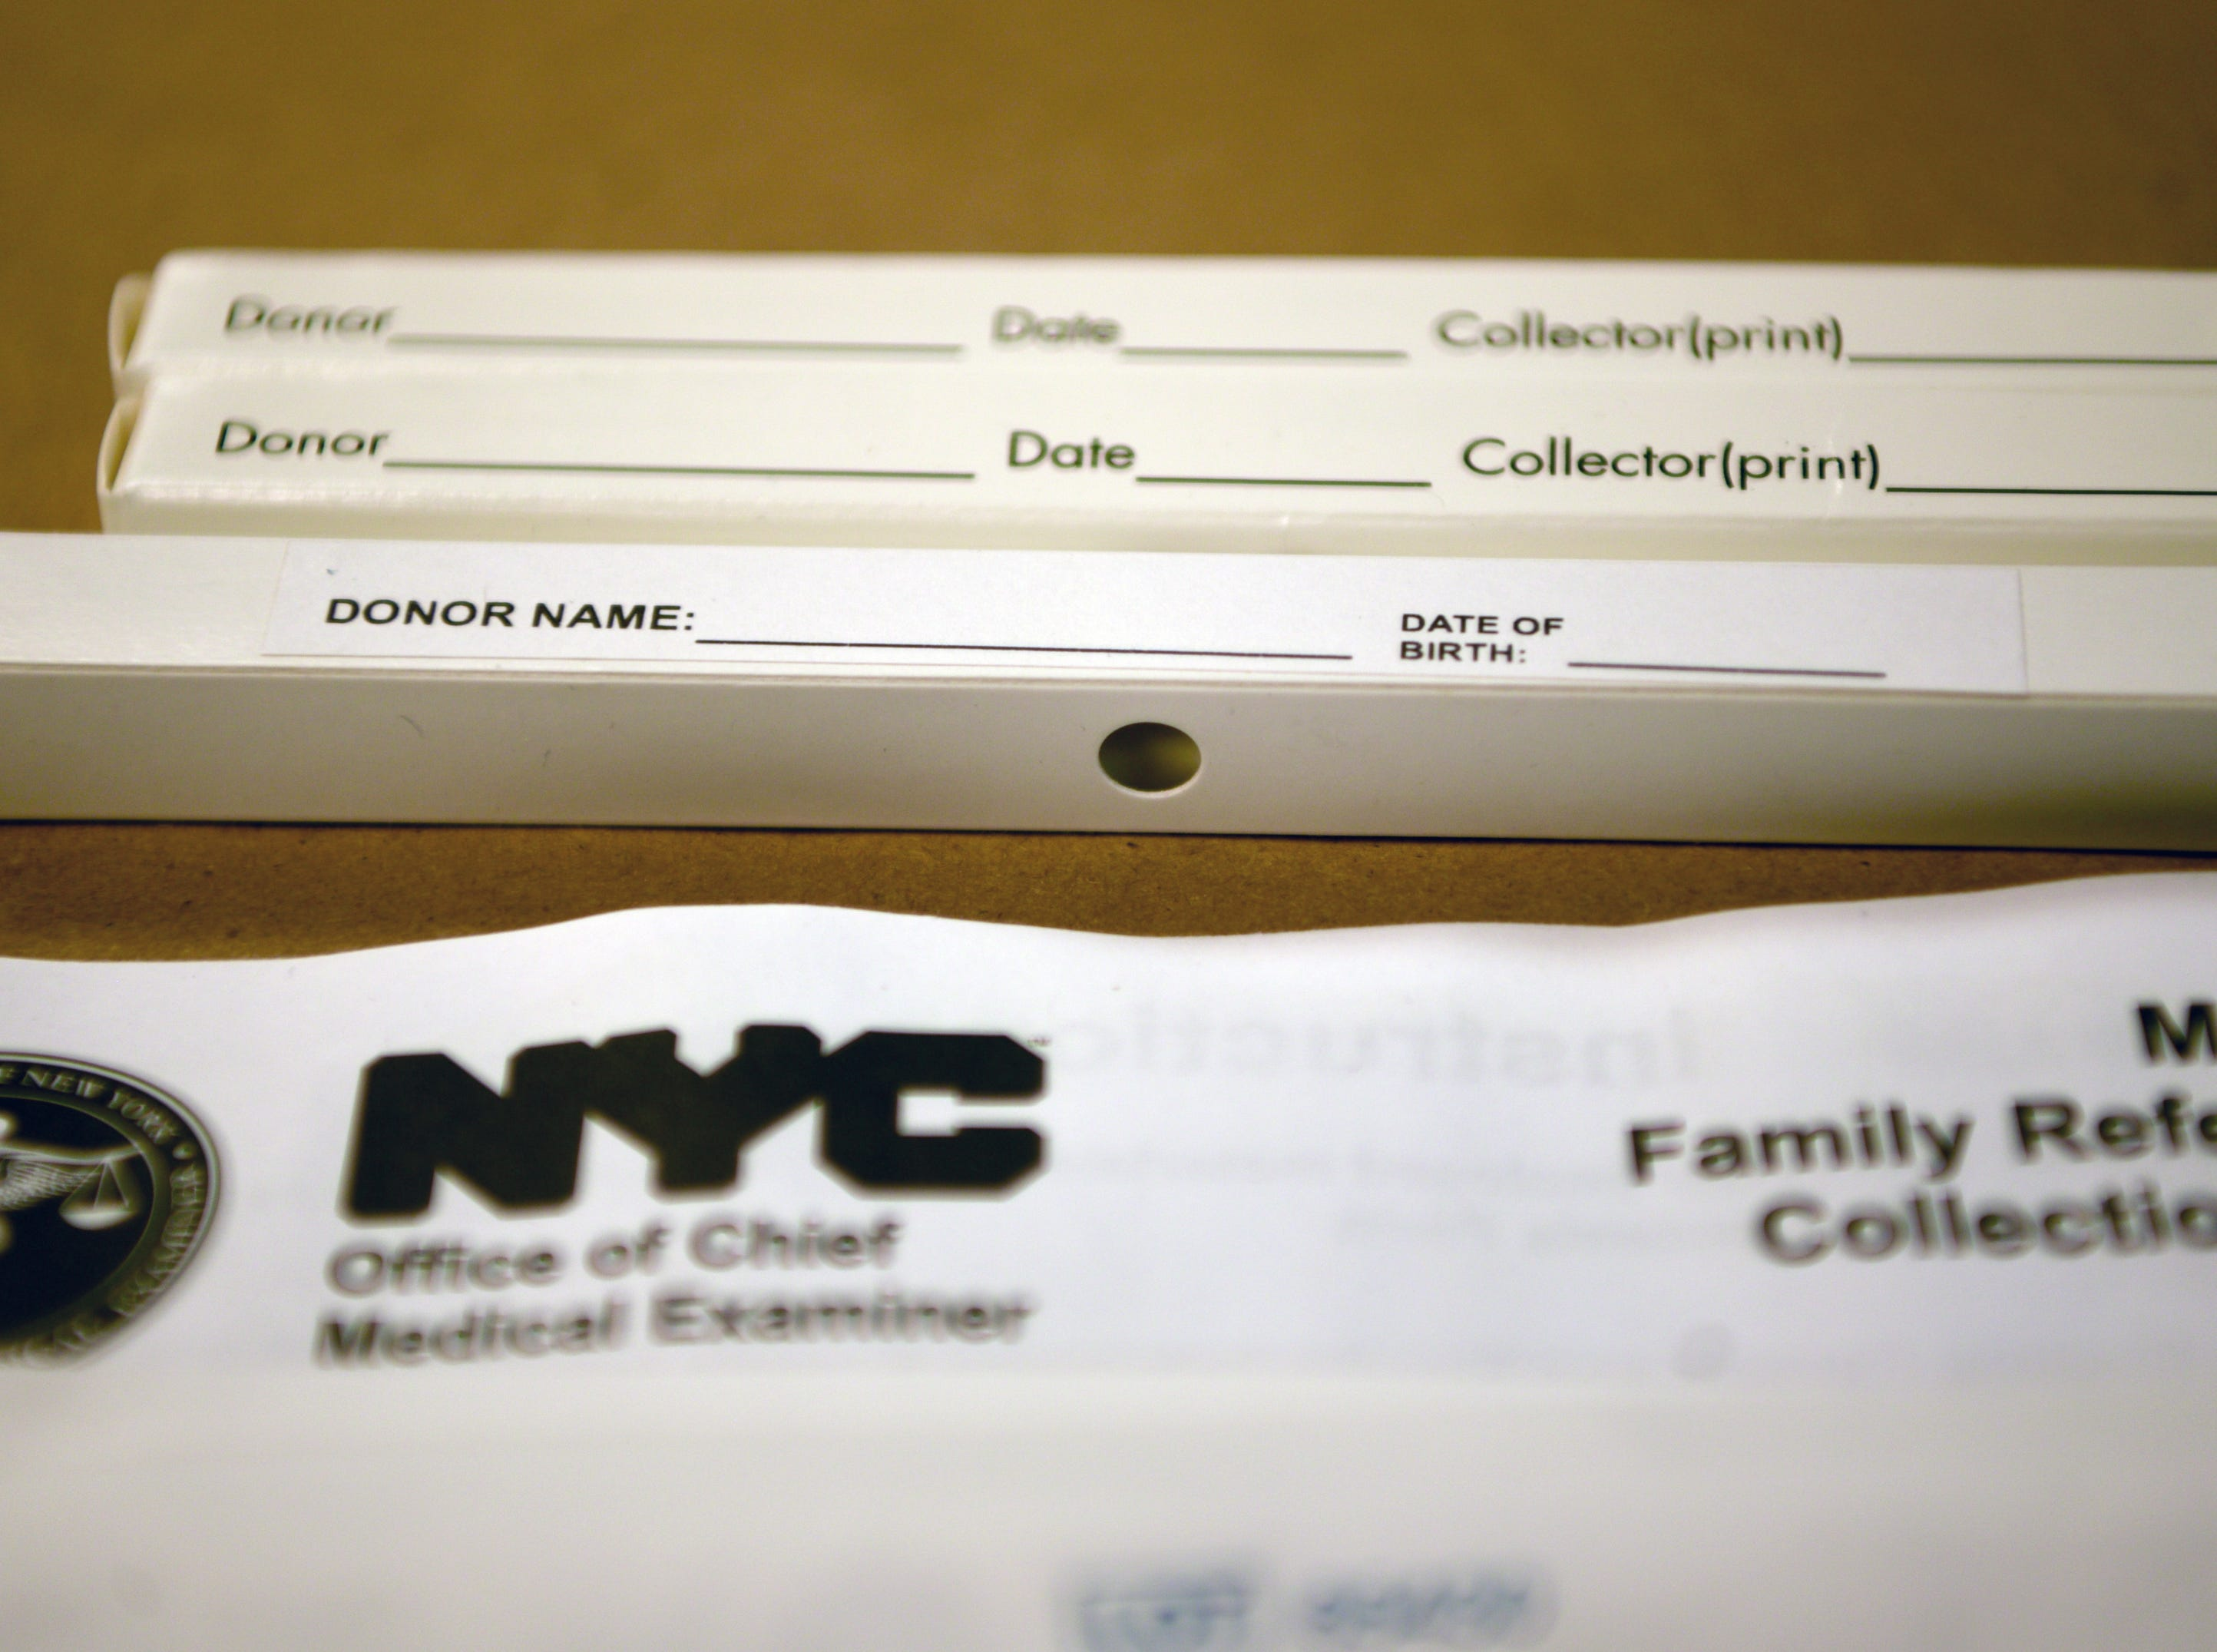 The New York City Office of Chief Medical Examiner handles DNA testing for unidentified persons, including victims of the attacks on the World Trade Center on 9/11.